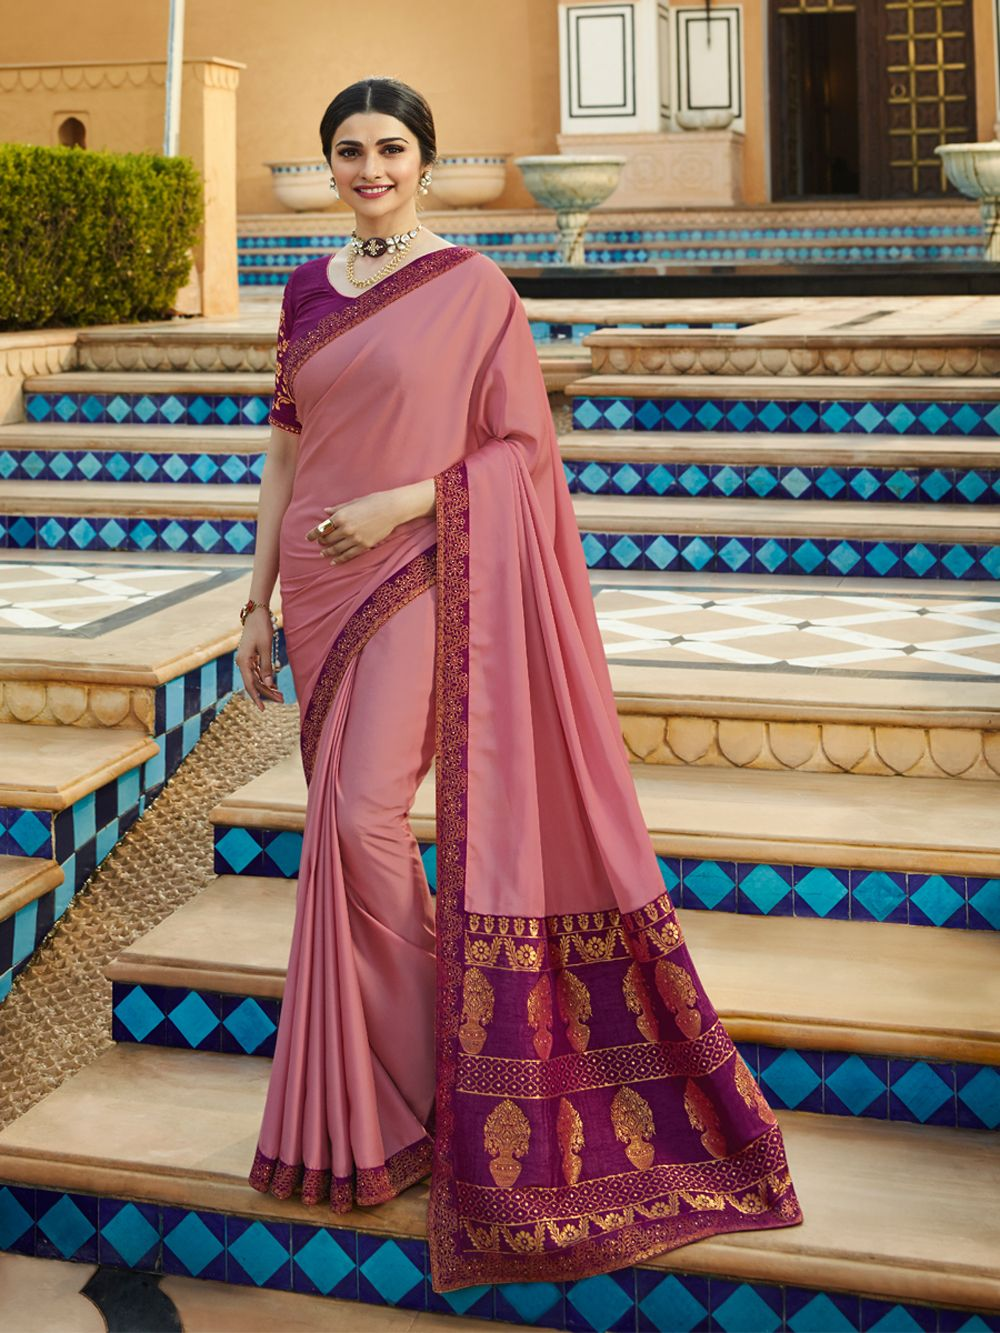 72f6154619 Check out the Light Pink White Rangoli Traditional Saree at #NihalFashions.